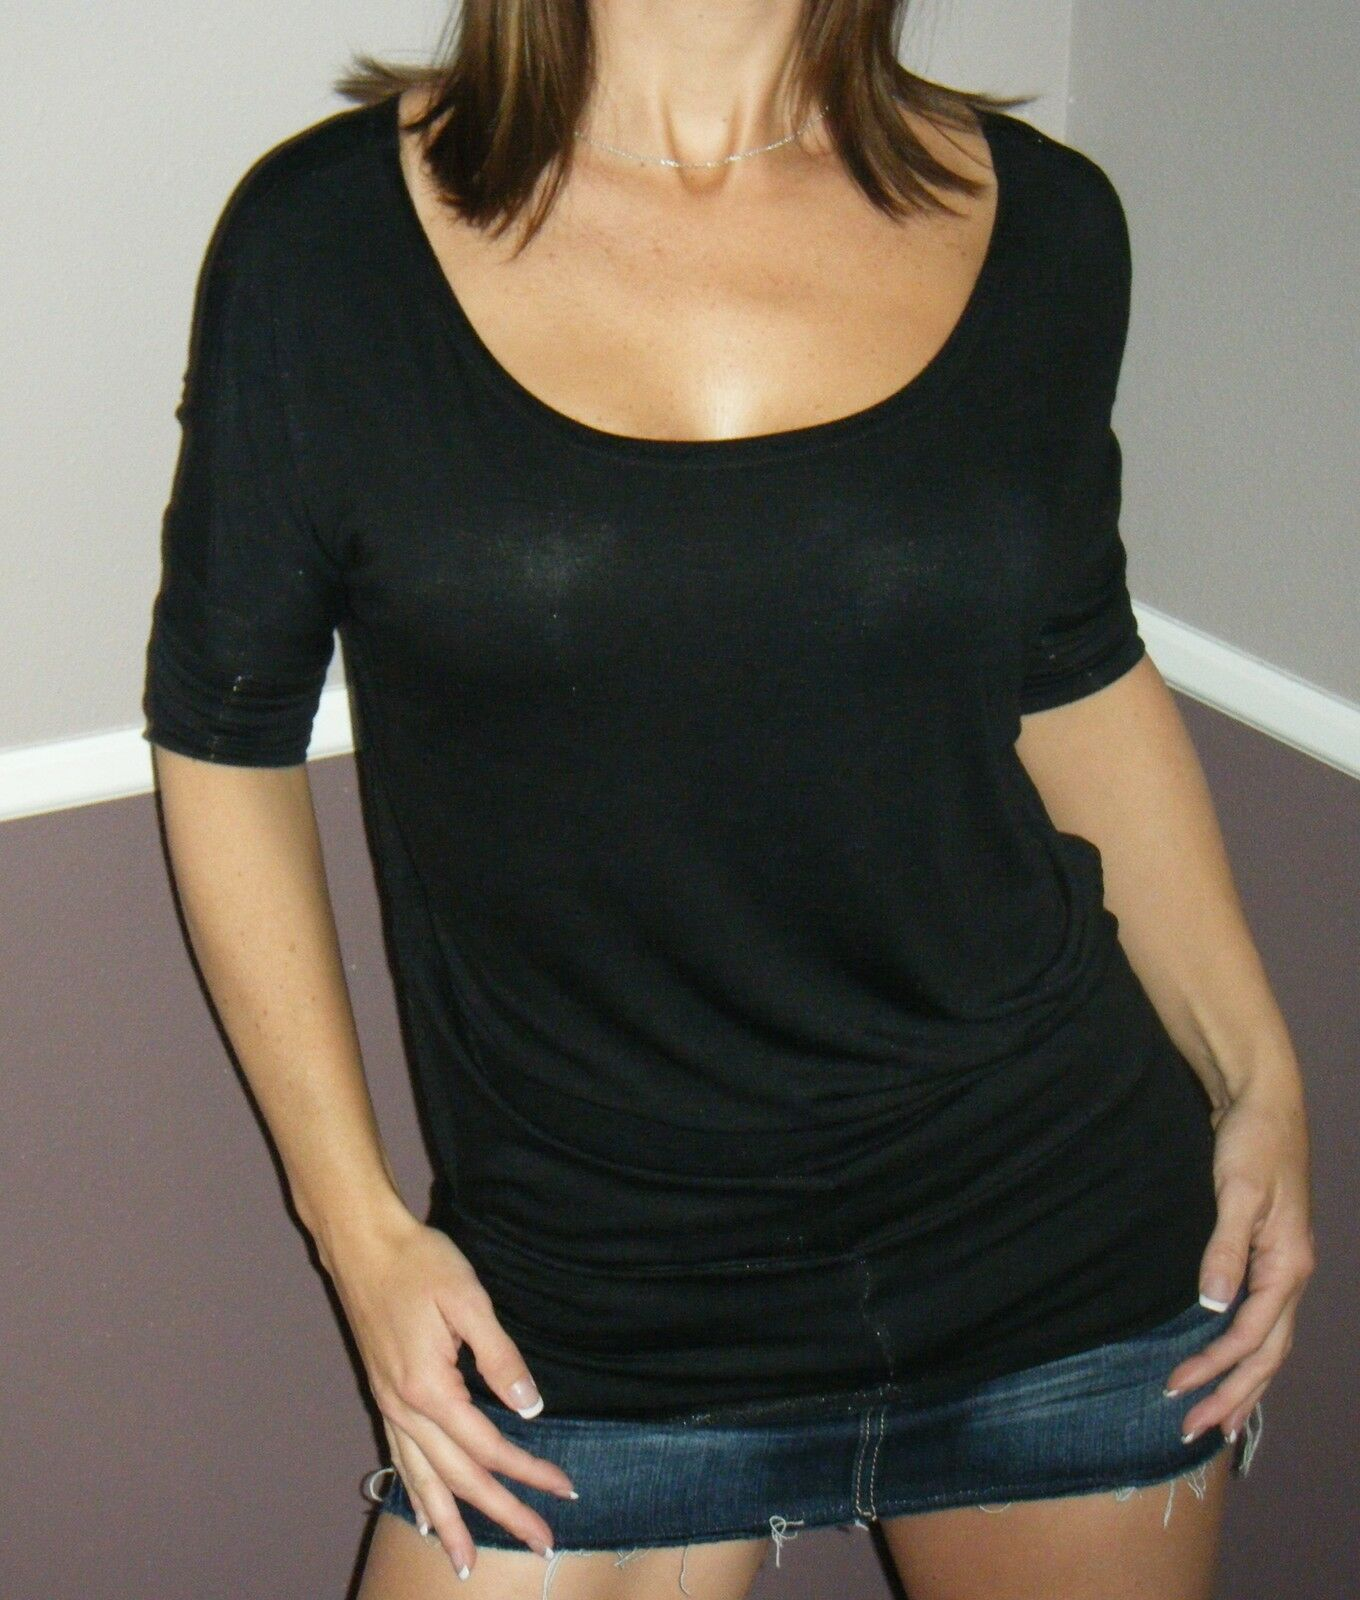 Very Sexy Dolman Wide Scoop Open Boat Neck Batwing Blouse Top Shirt Black S/M/L